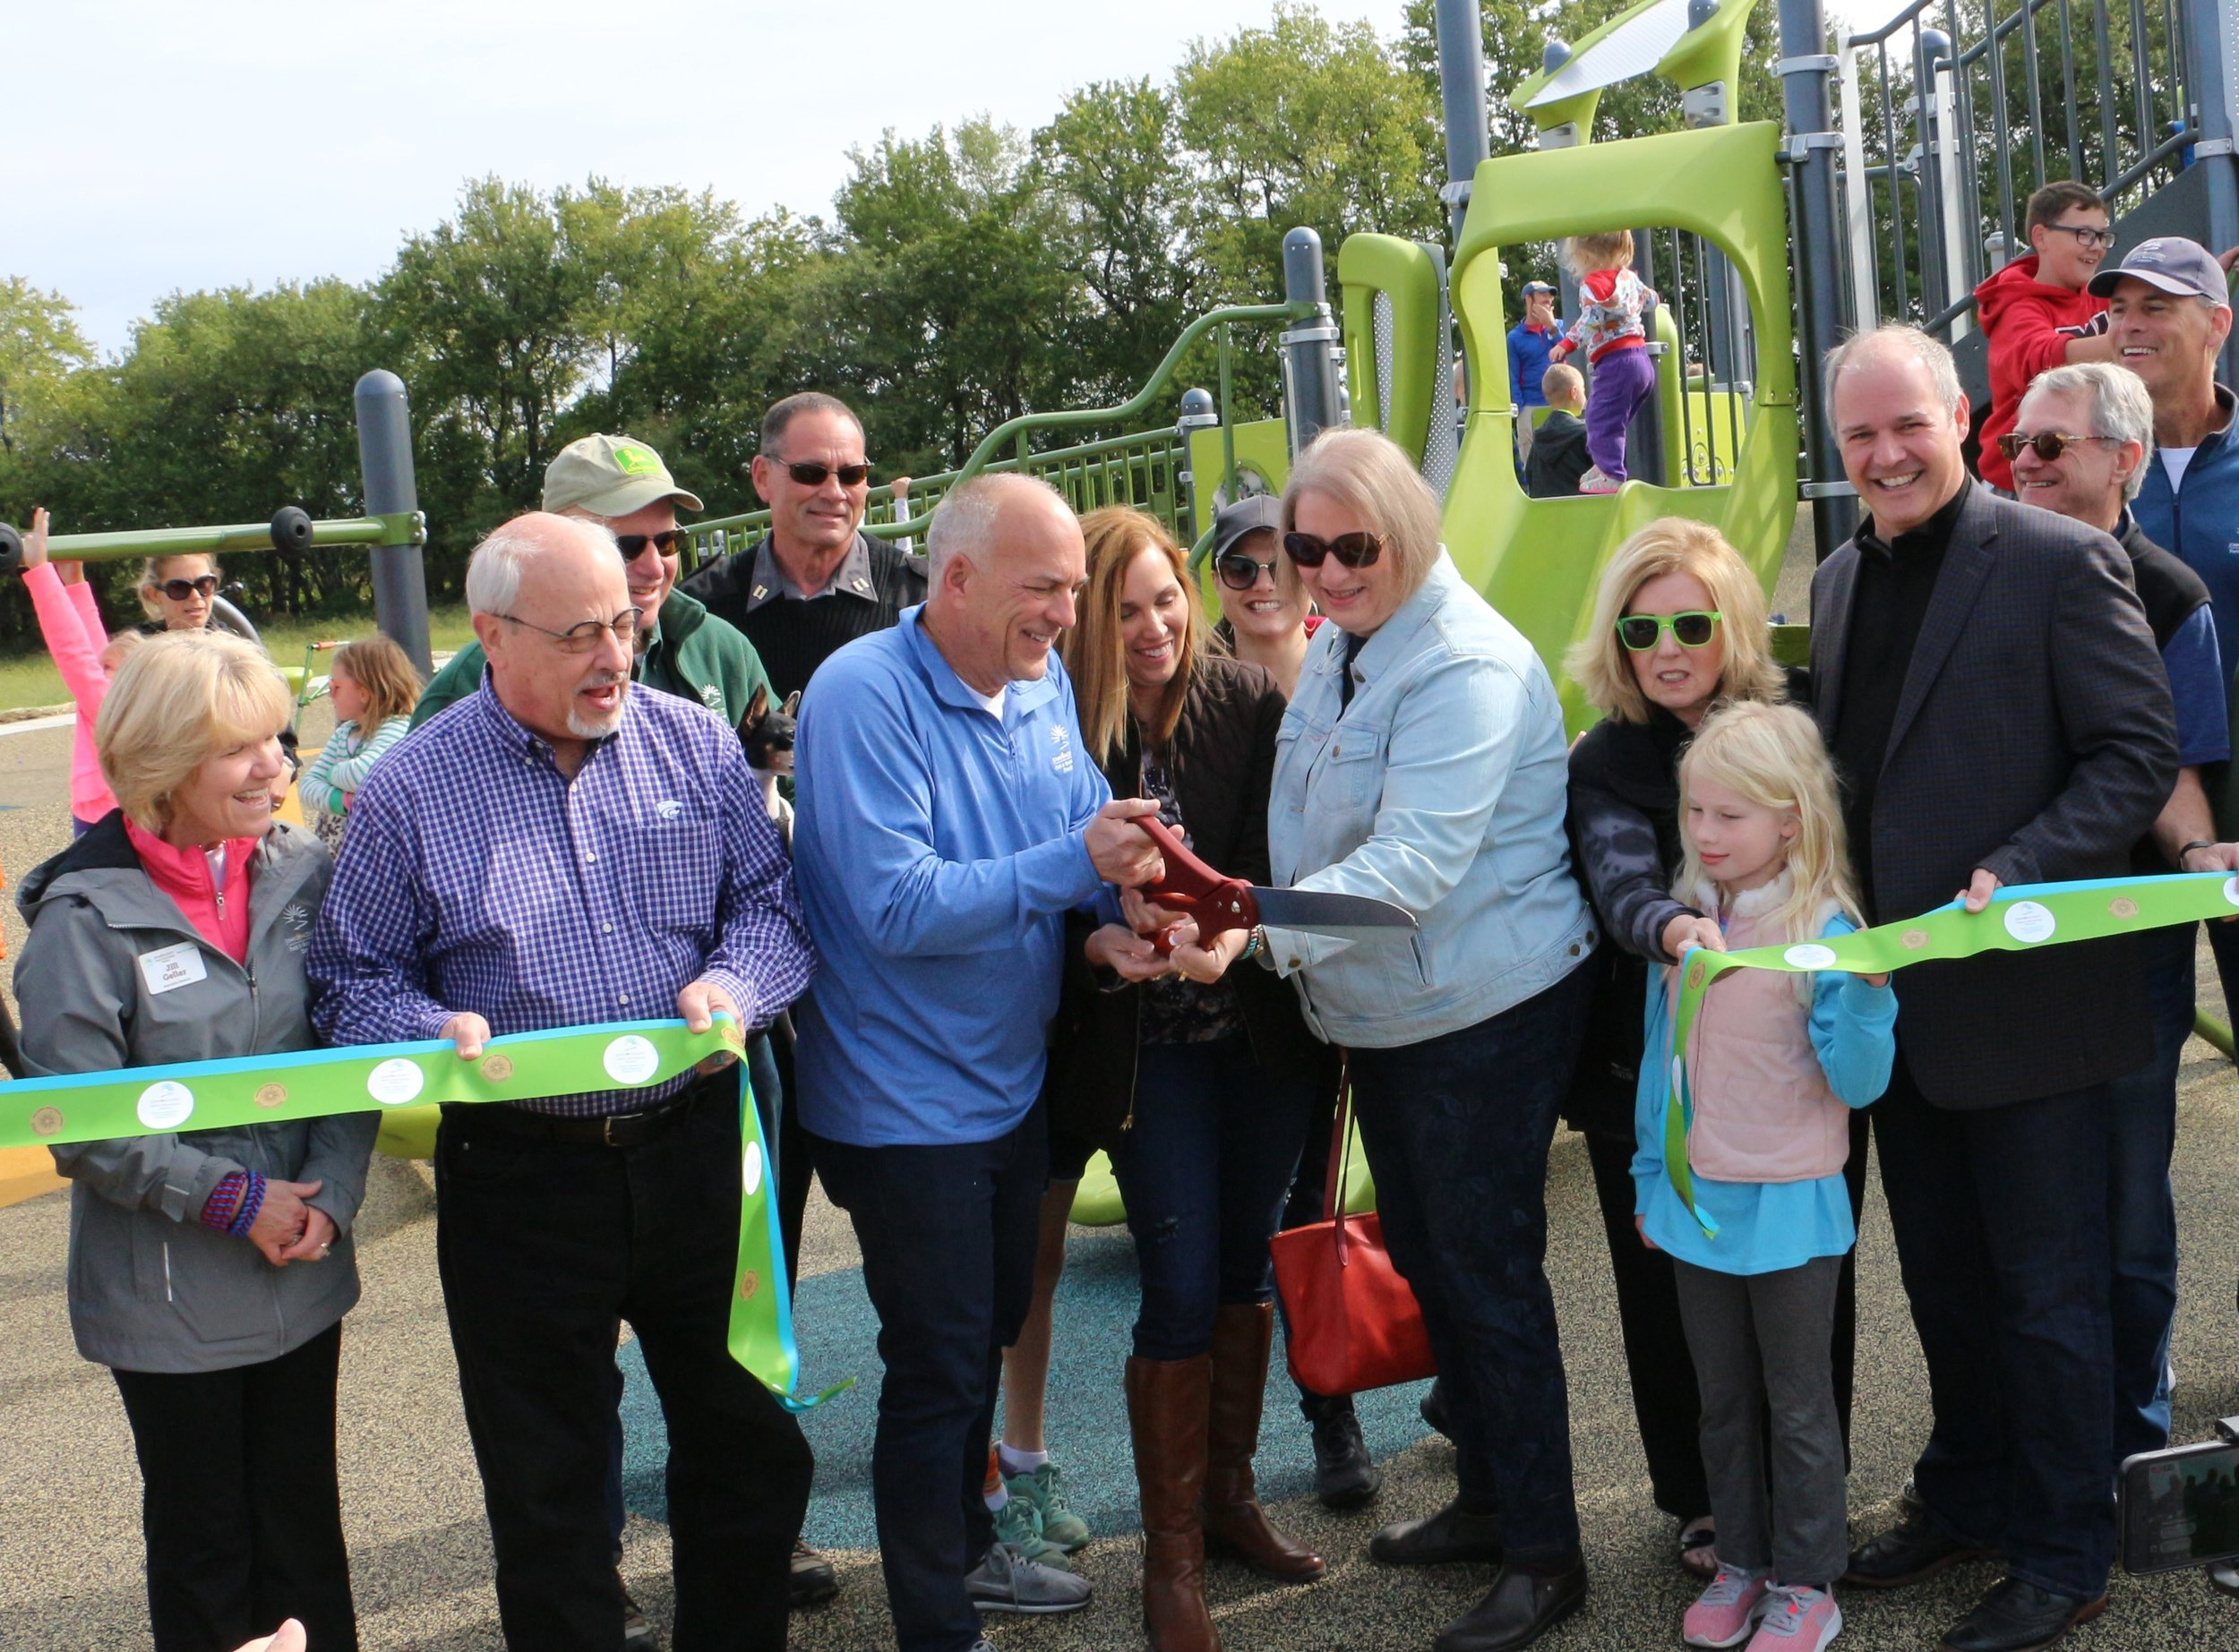 Nancy Wallerstein Cutting Ribbon For New Park